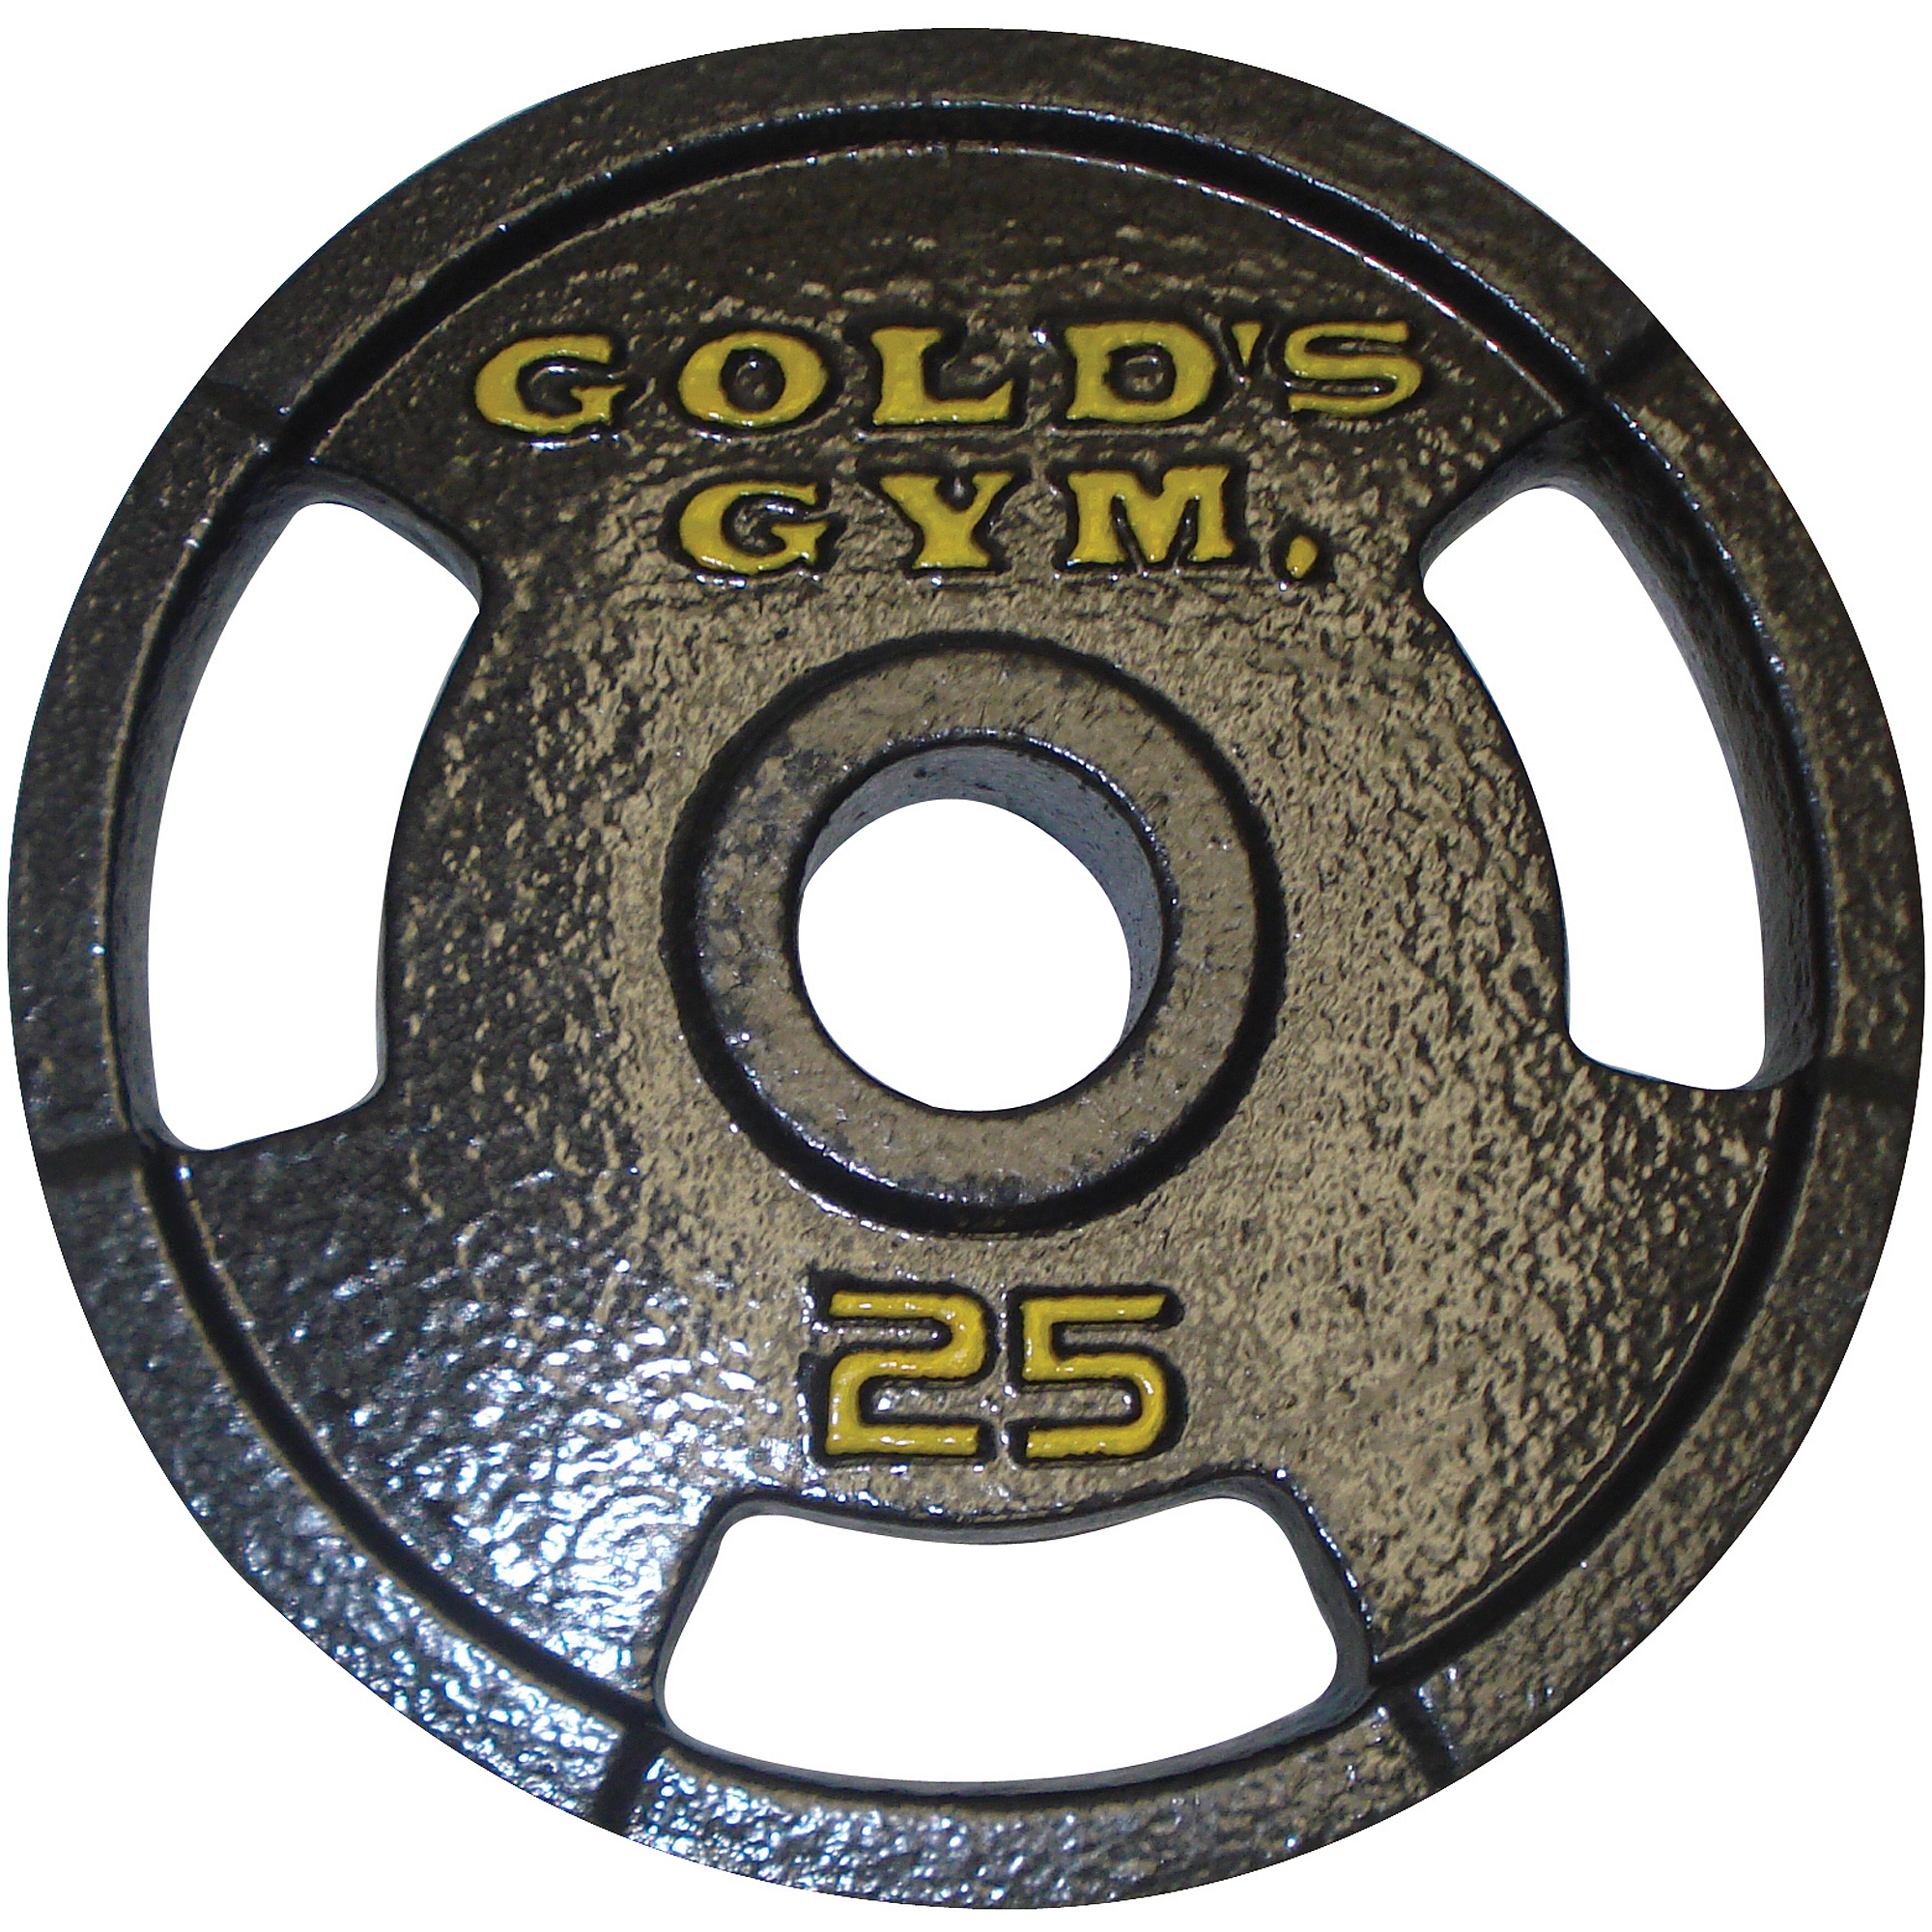 "Golds Gym 2"" Grip Plate, Available in Multiple Colors"